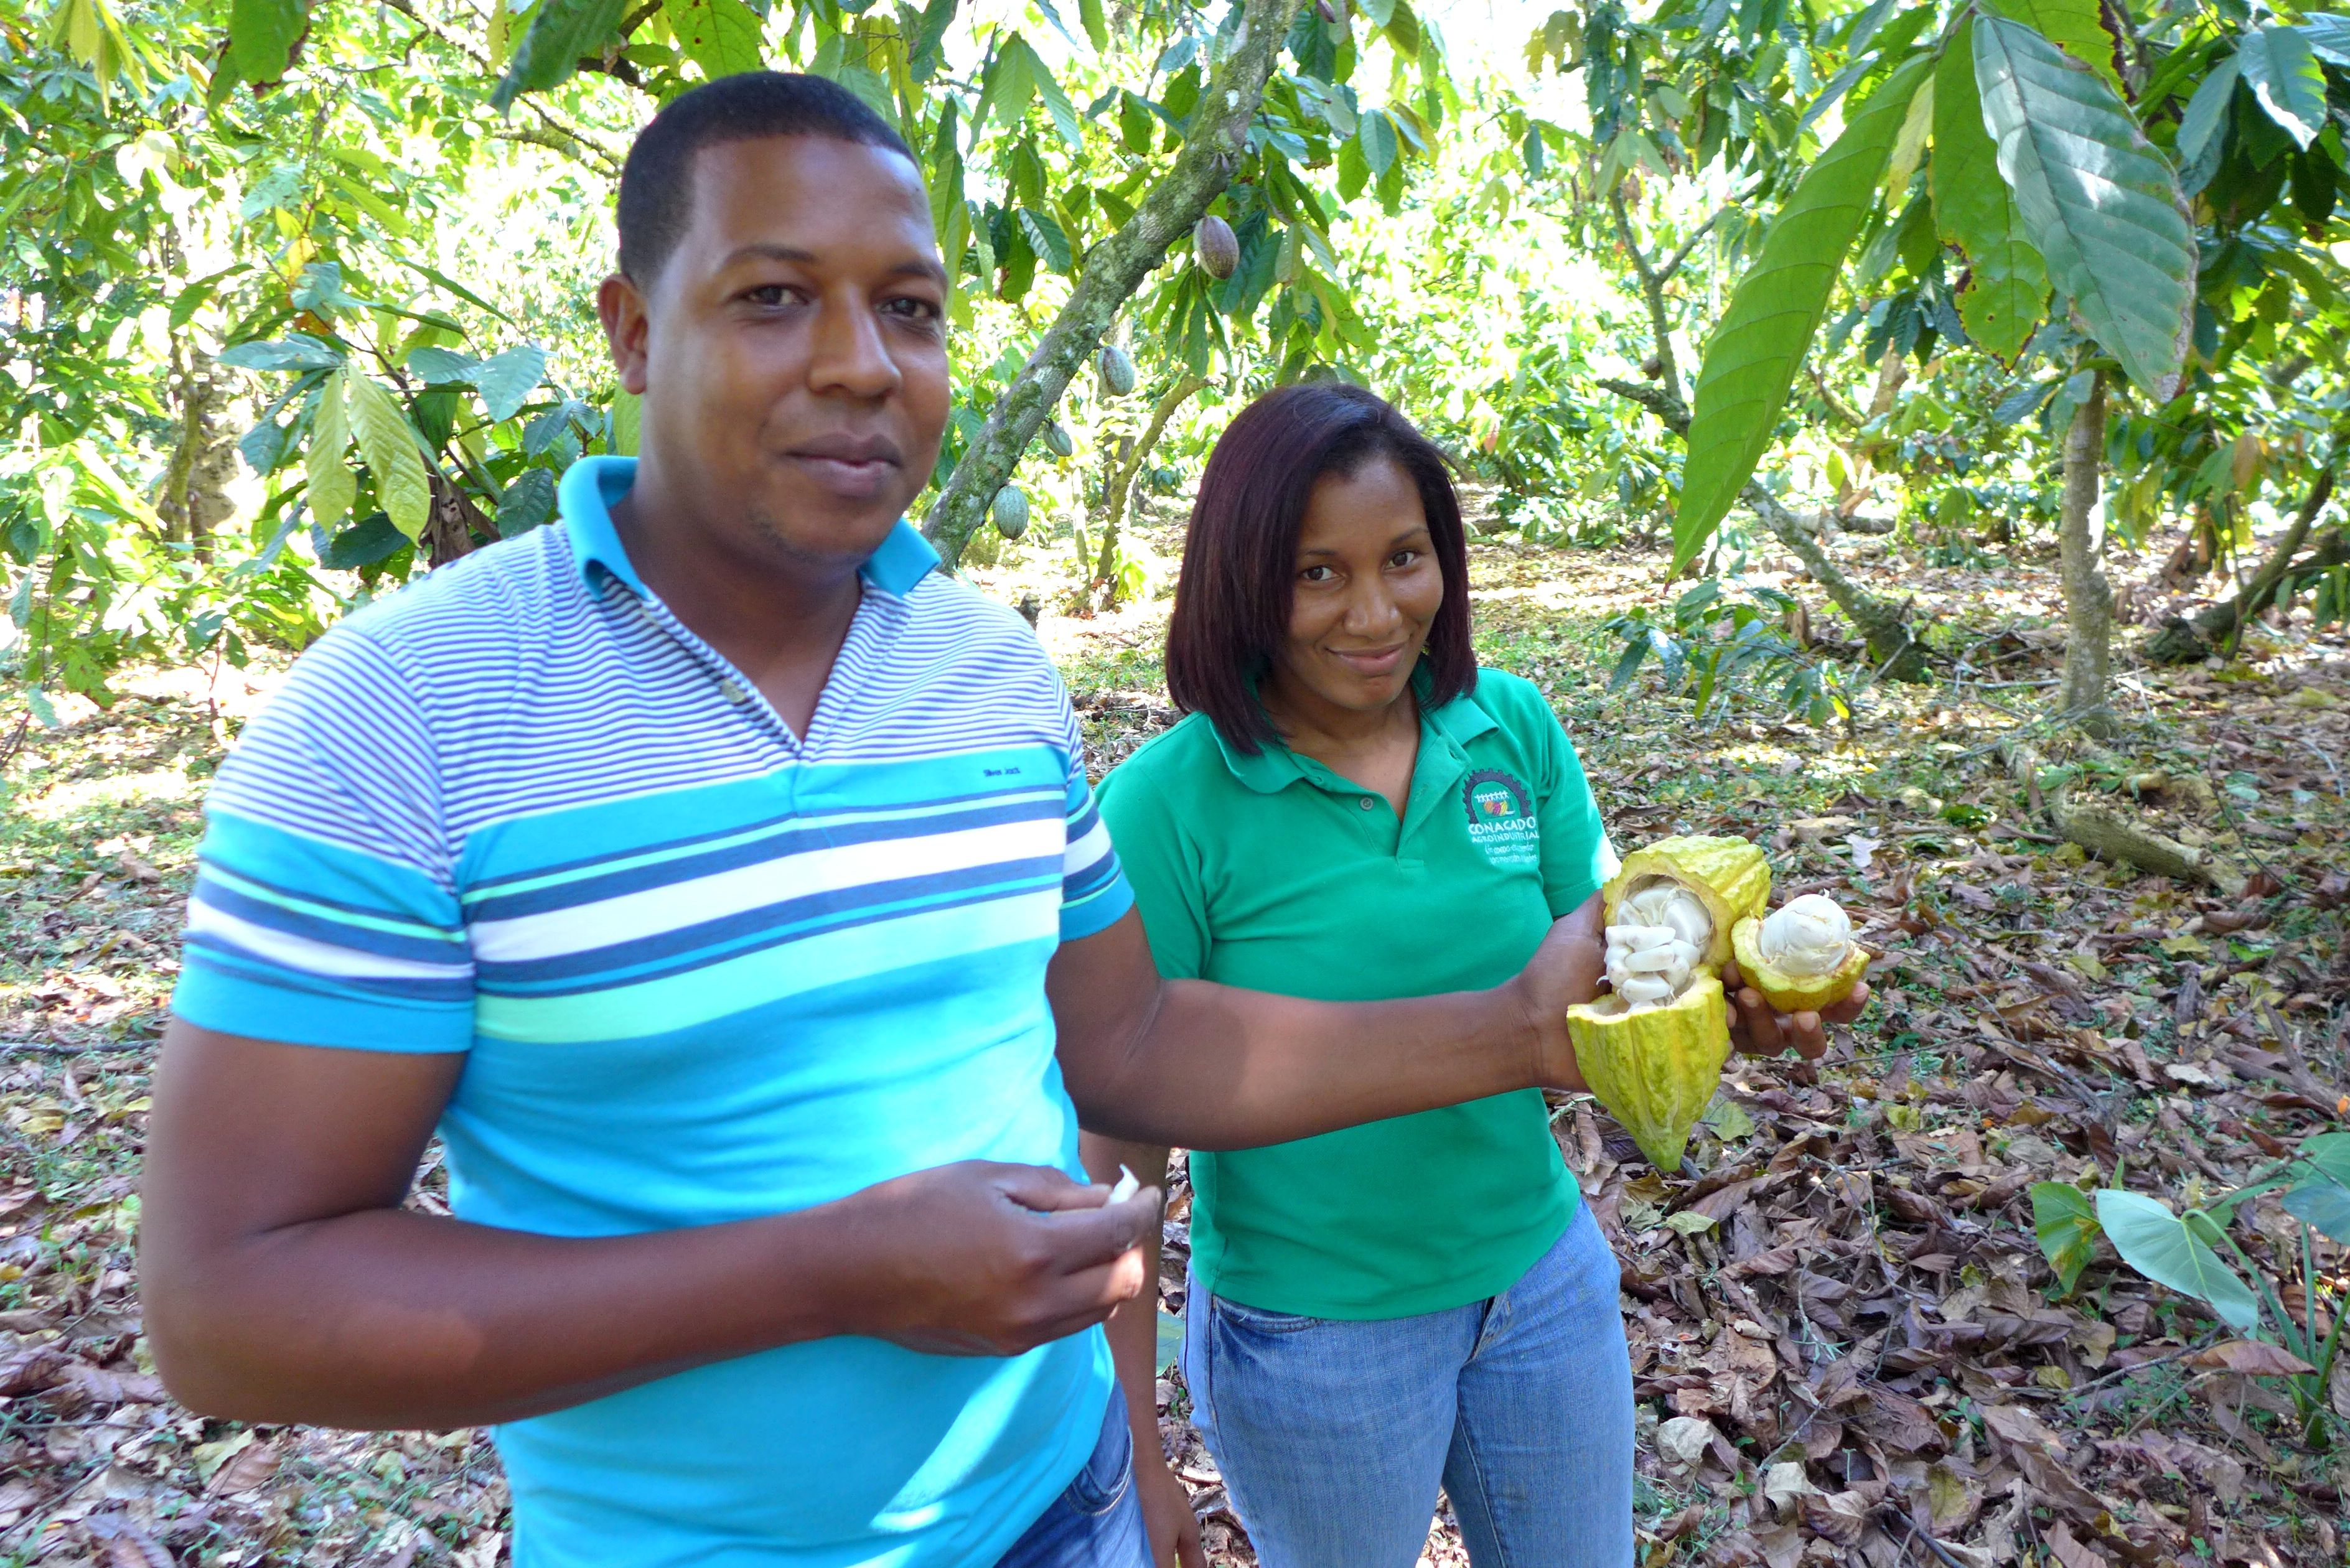 A man and a woman proudly display cacao pods, from which organic chocolate is made.